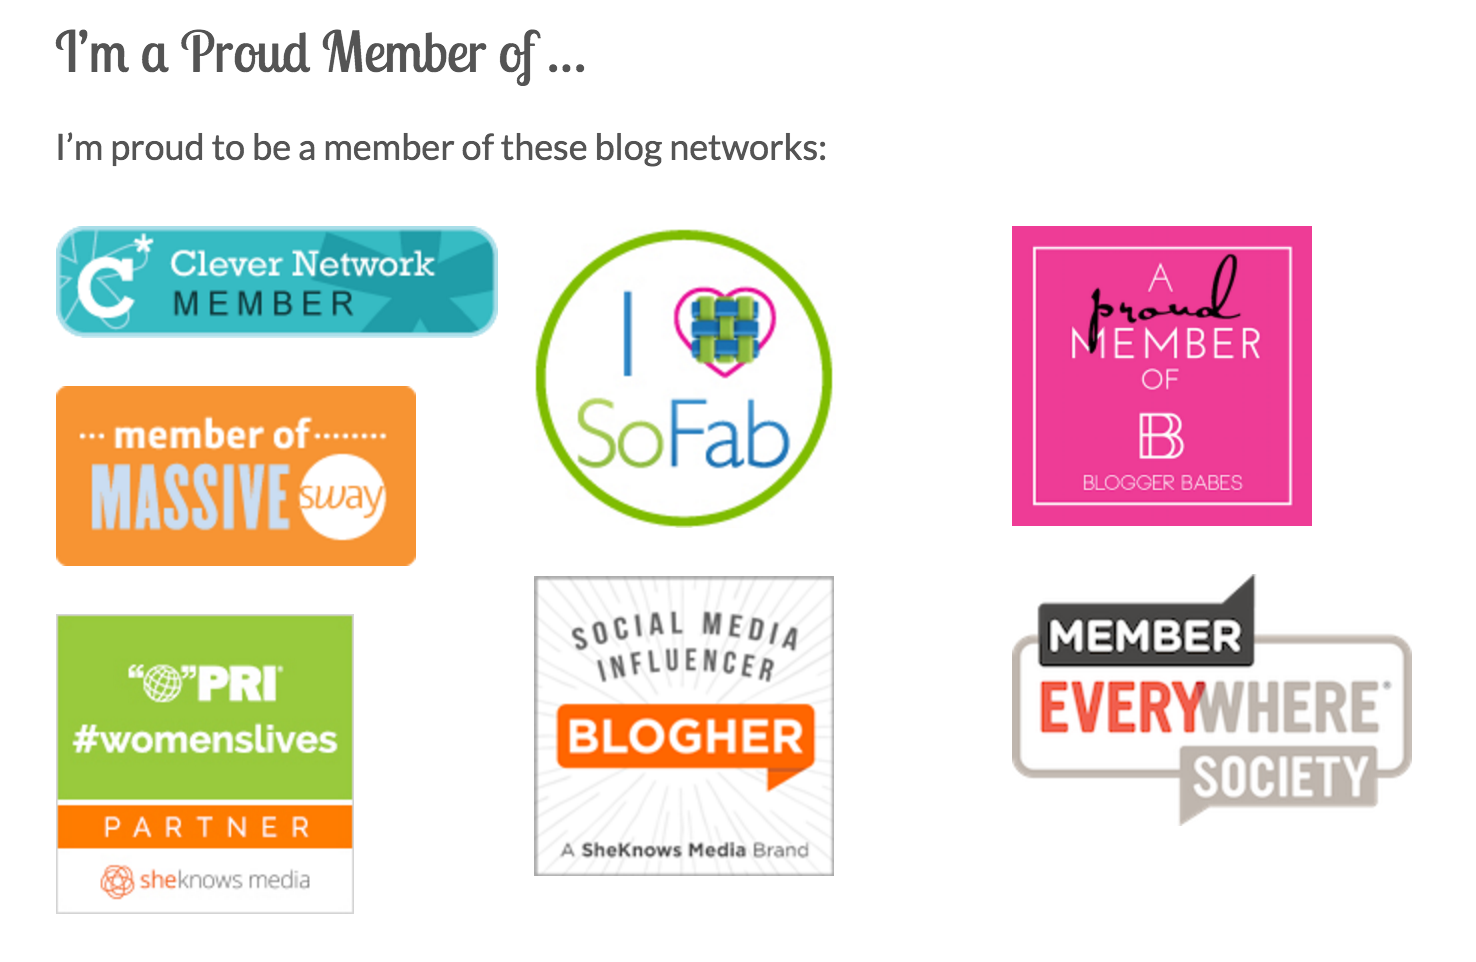 I'm proud to be a member of these fine blogging networks!